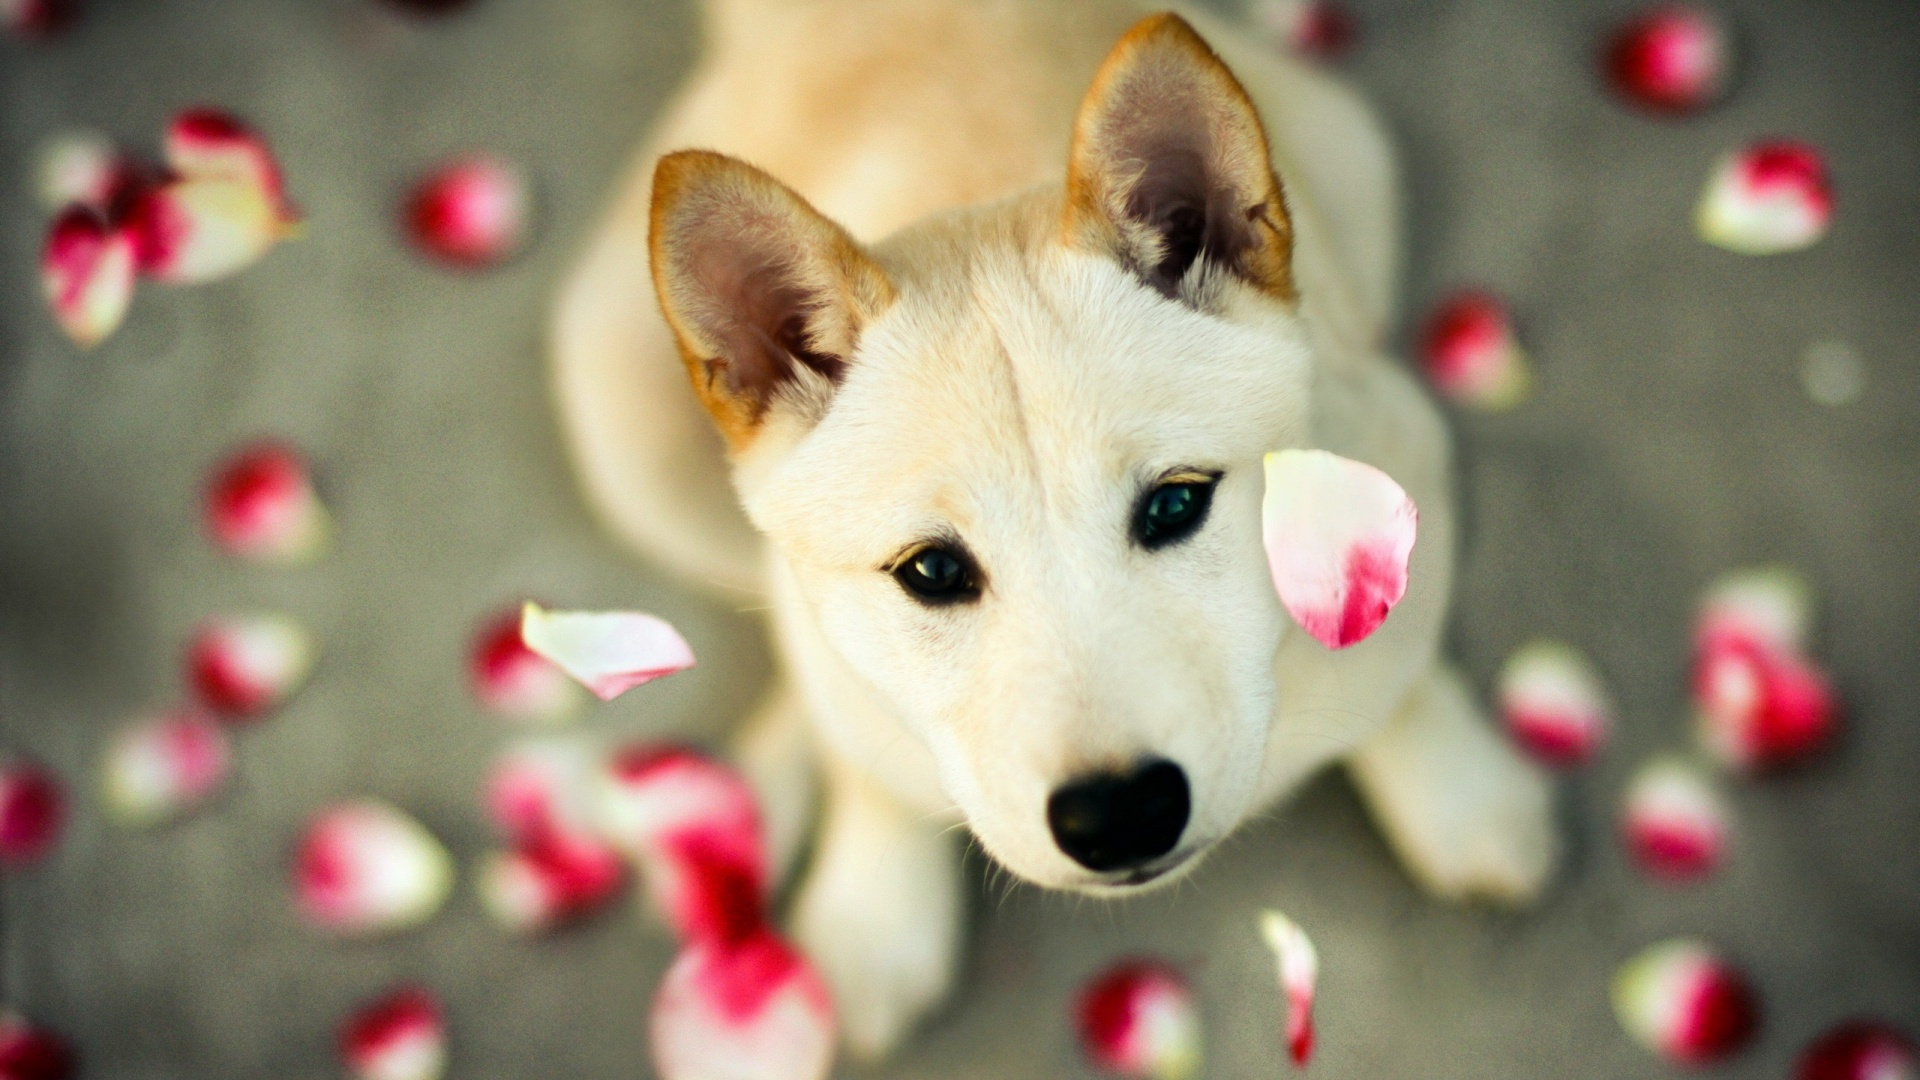 Cute Puppy Wallpaper 25746 1920x1080px